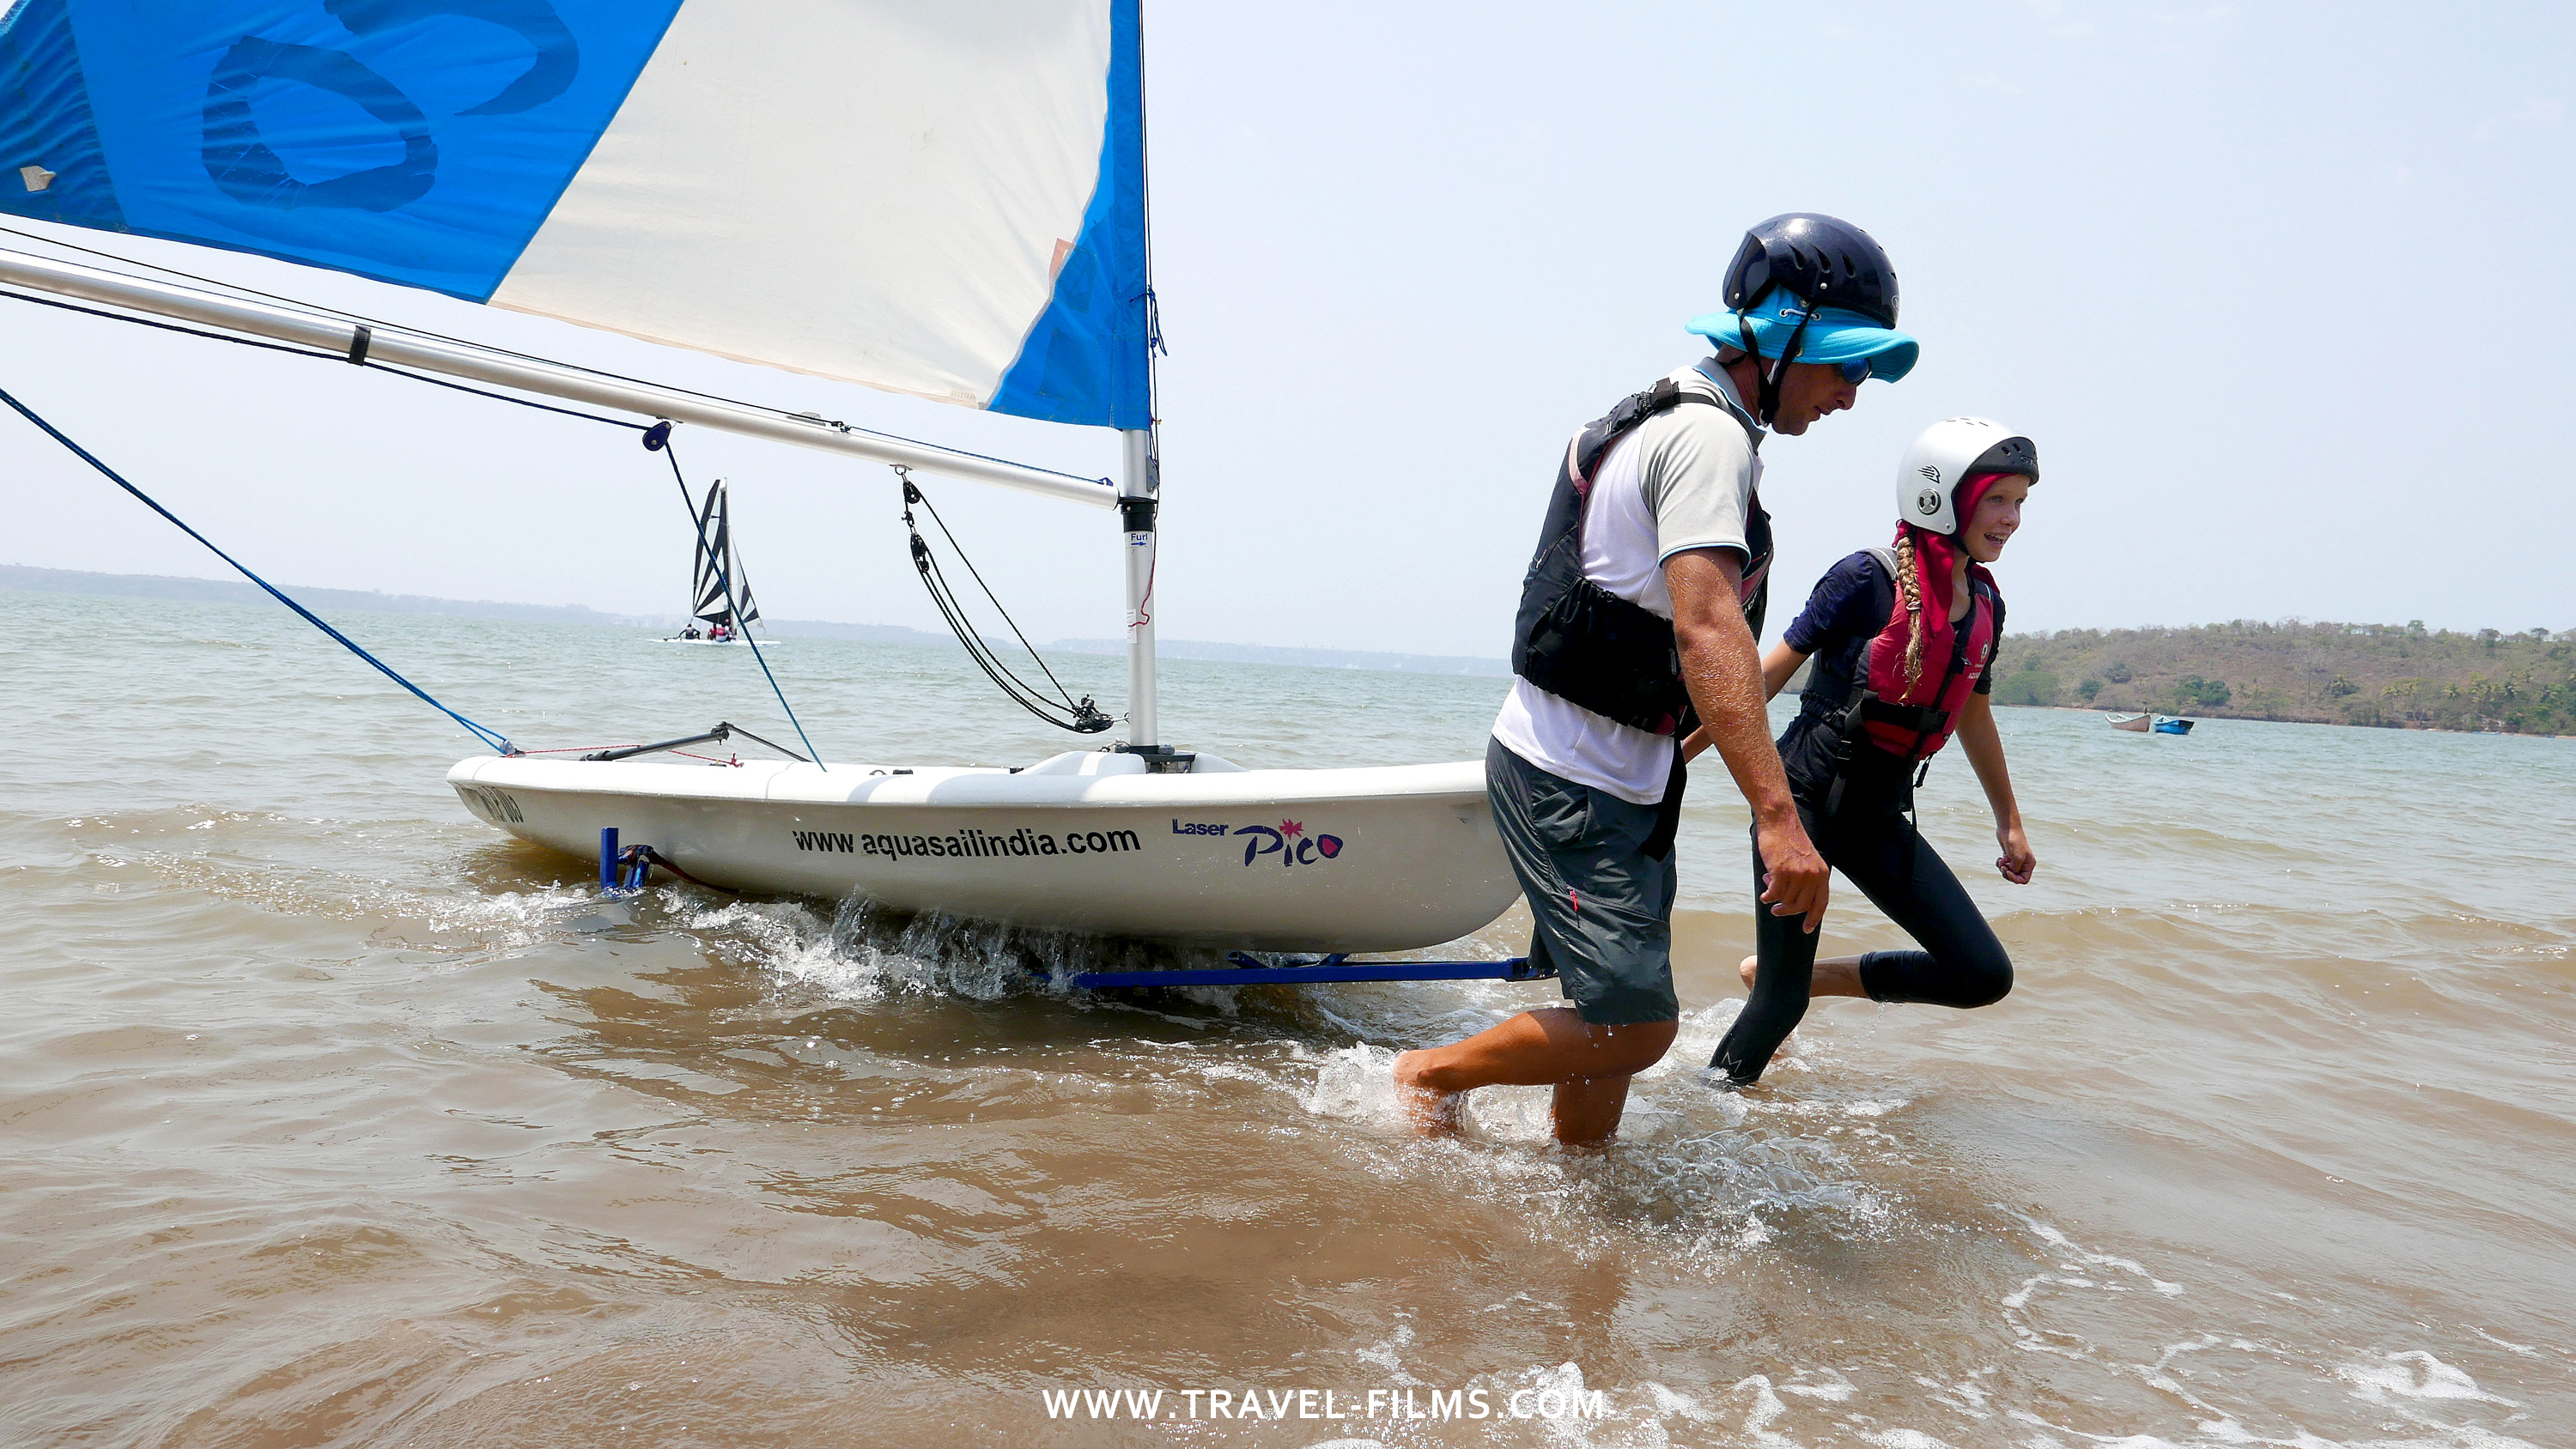 Aquasail sailing school Goa